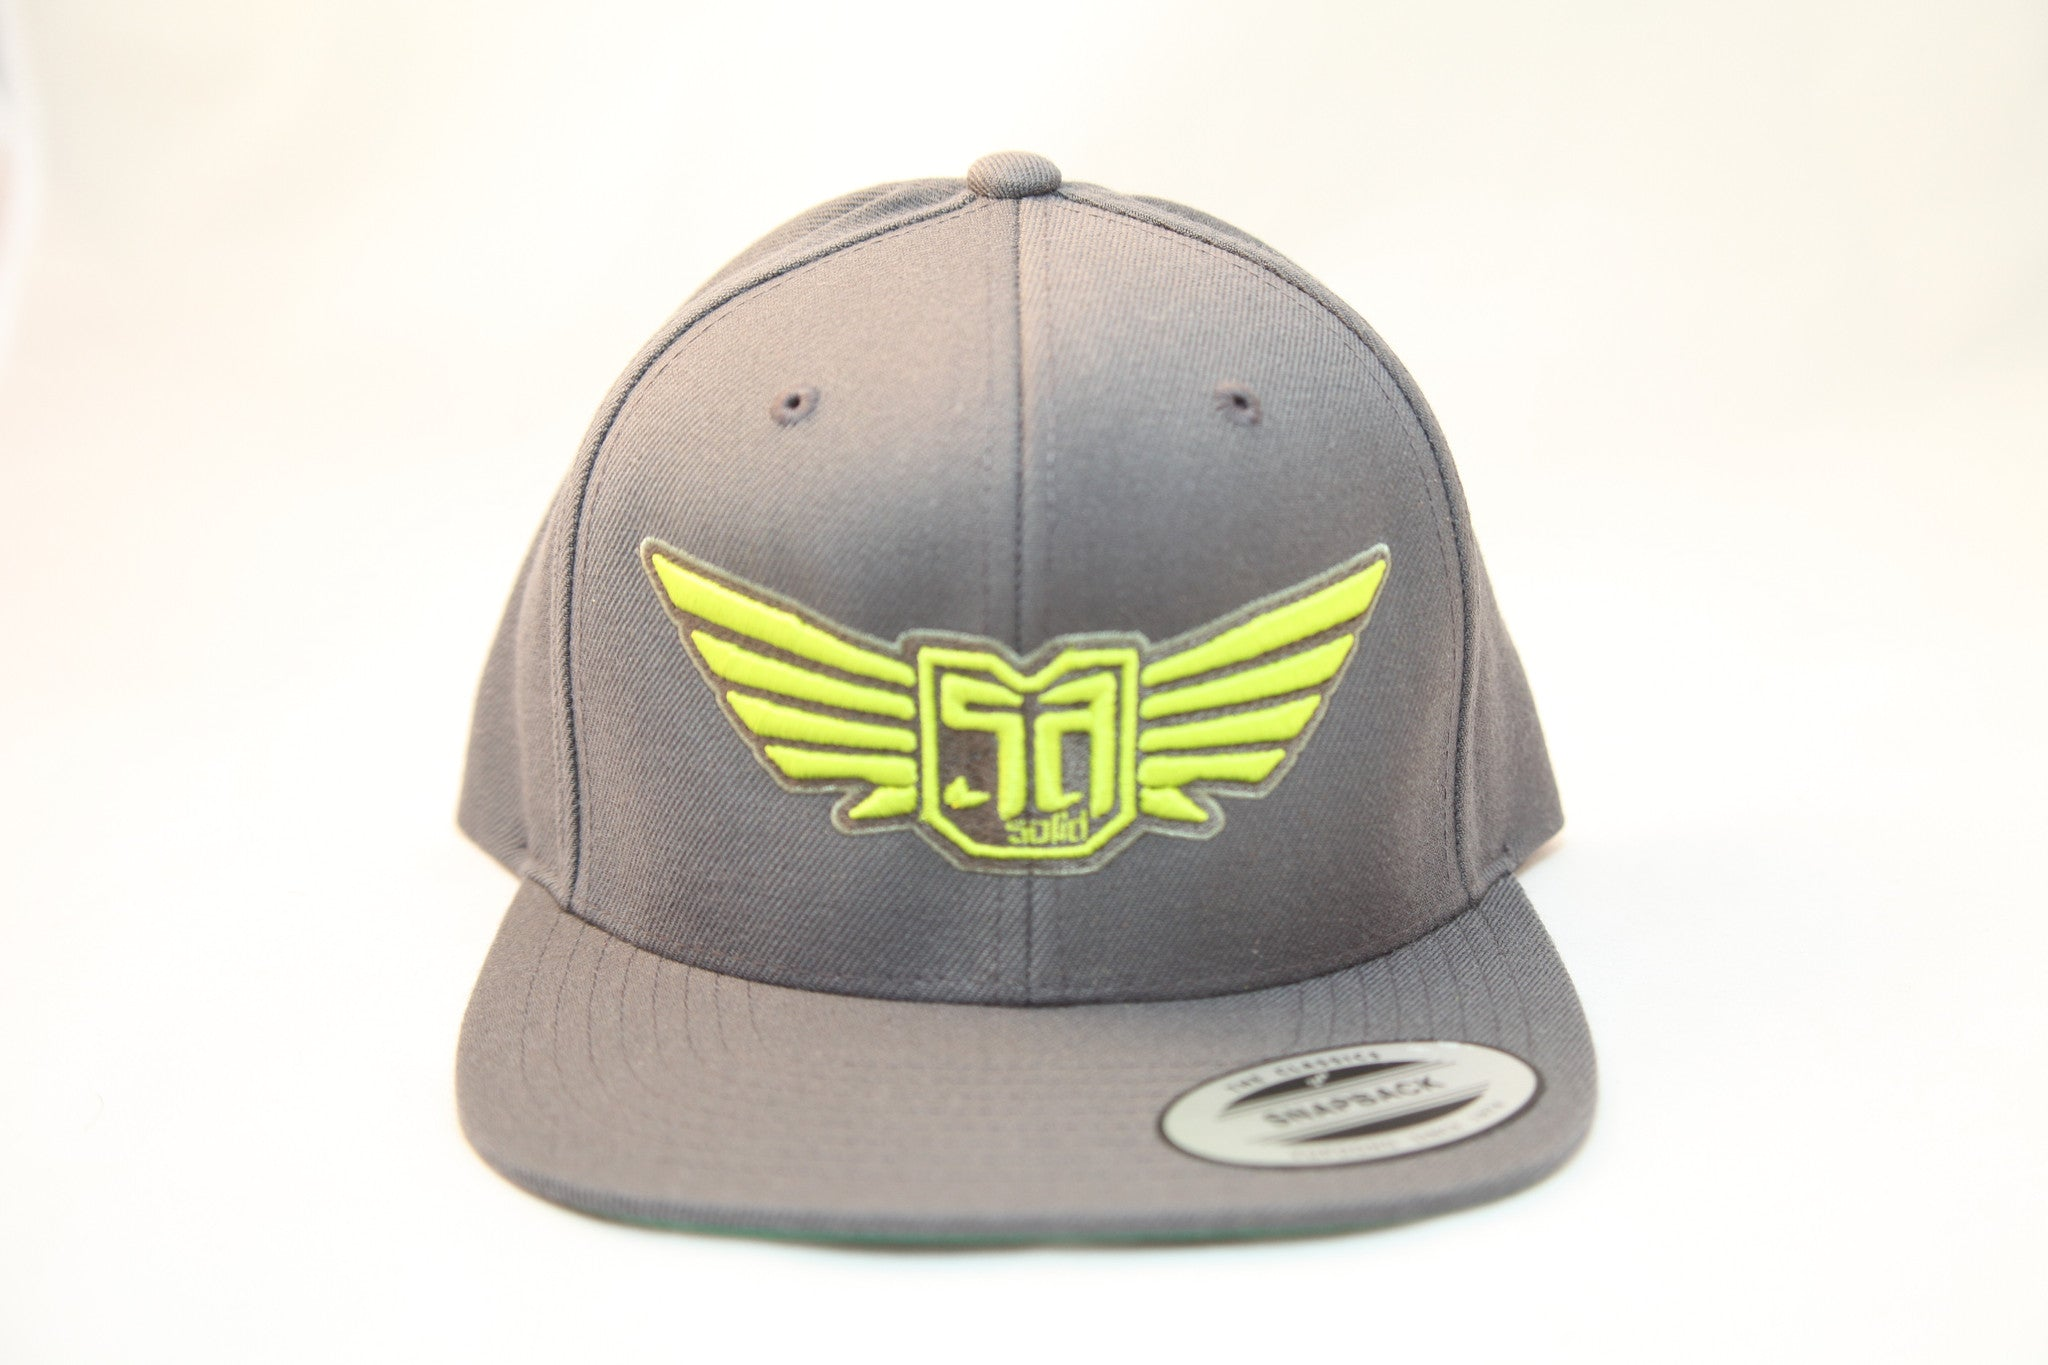 AV8 - FLEXFIT SNAP BACK HAT - CHARCOAL GREY - YLW / OLV LOGO